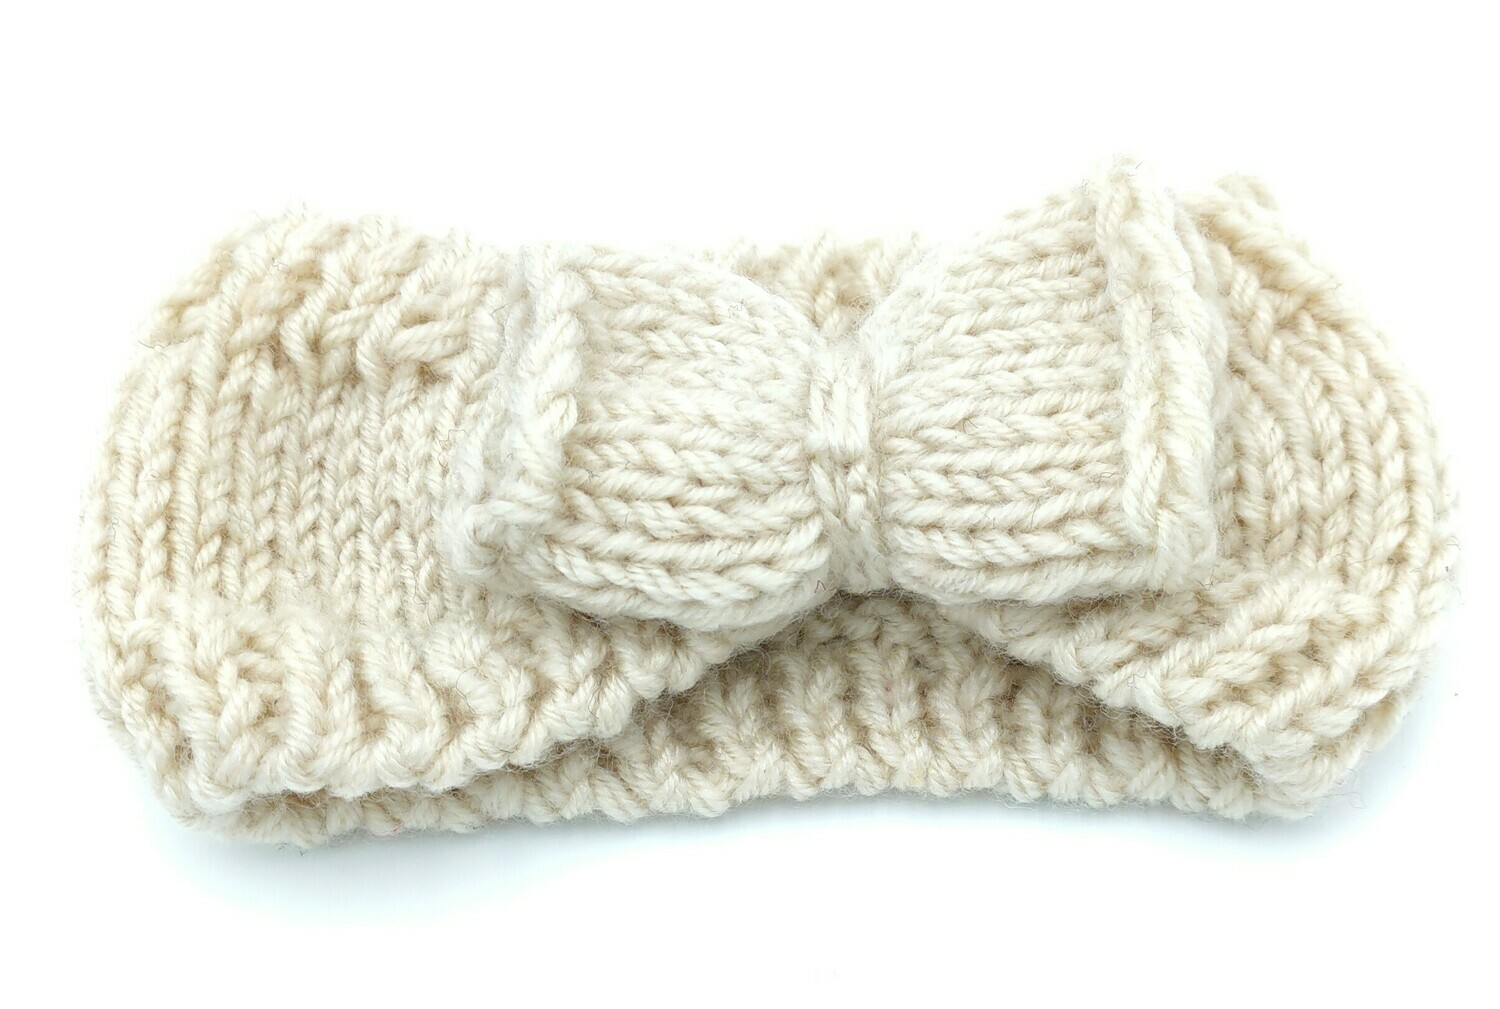 Crochet loop headband with